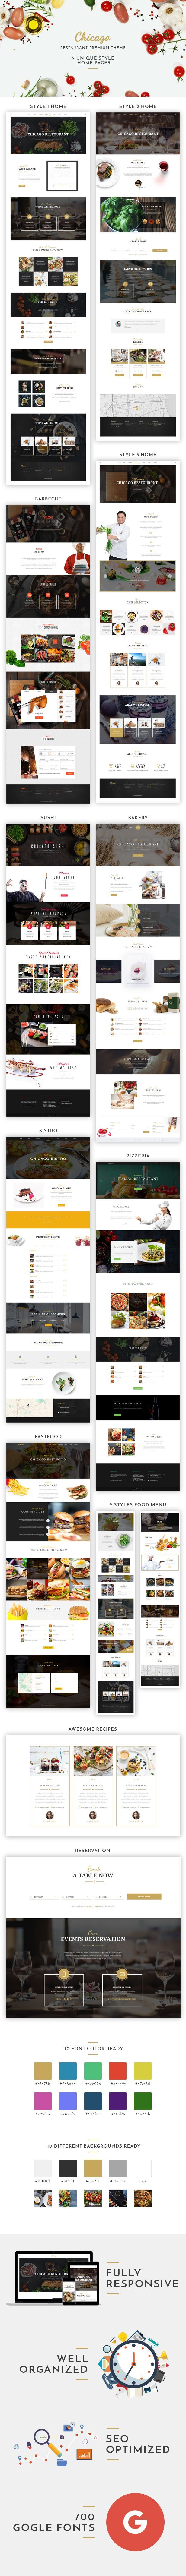 212 besten WordPress Themes Bilder auf Pinterest | Wordpress theme ...